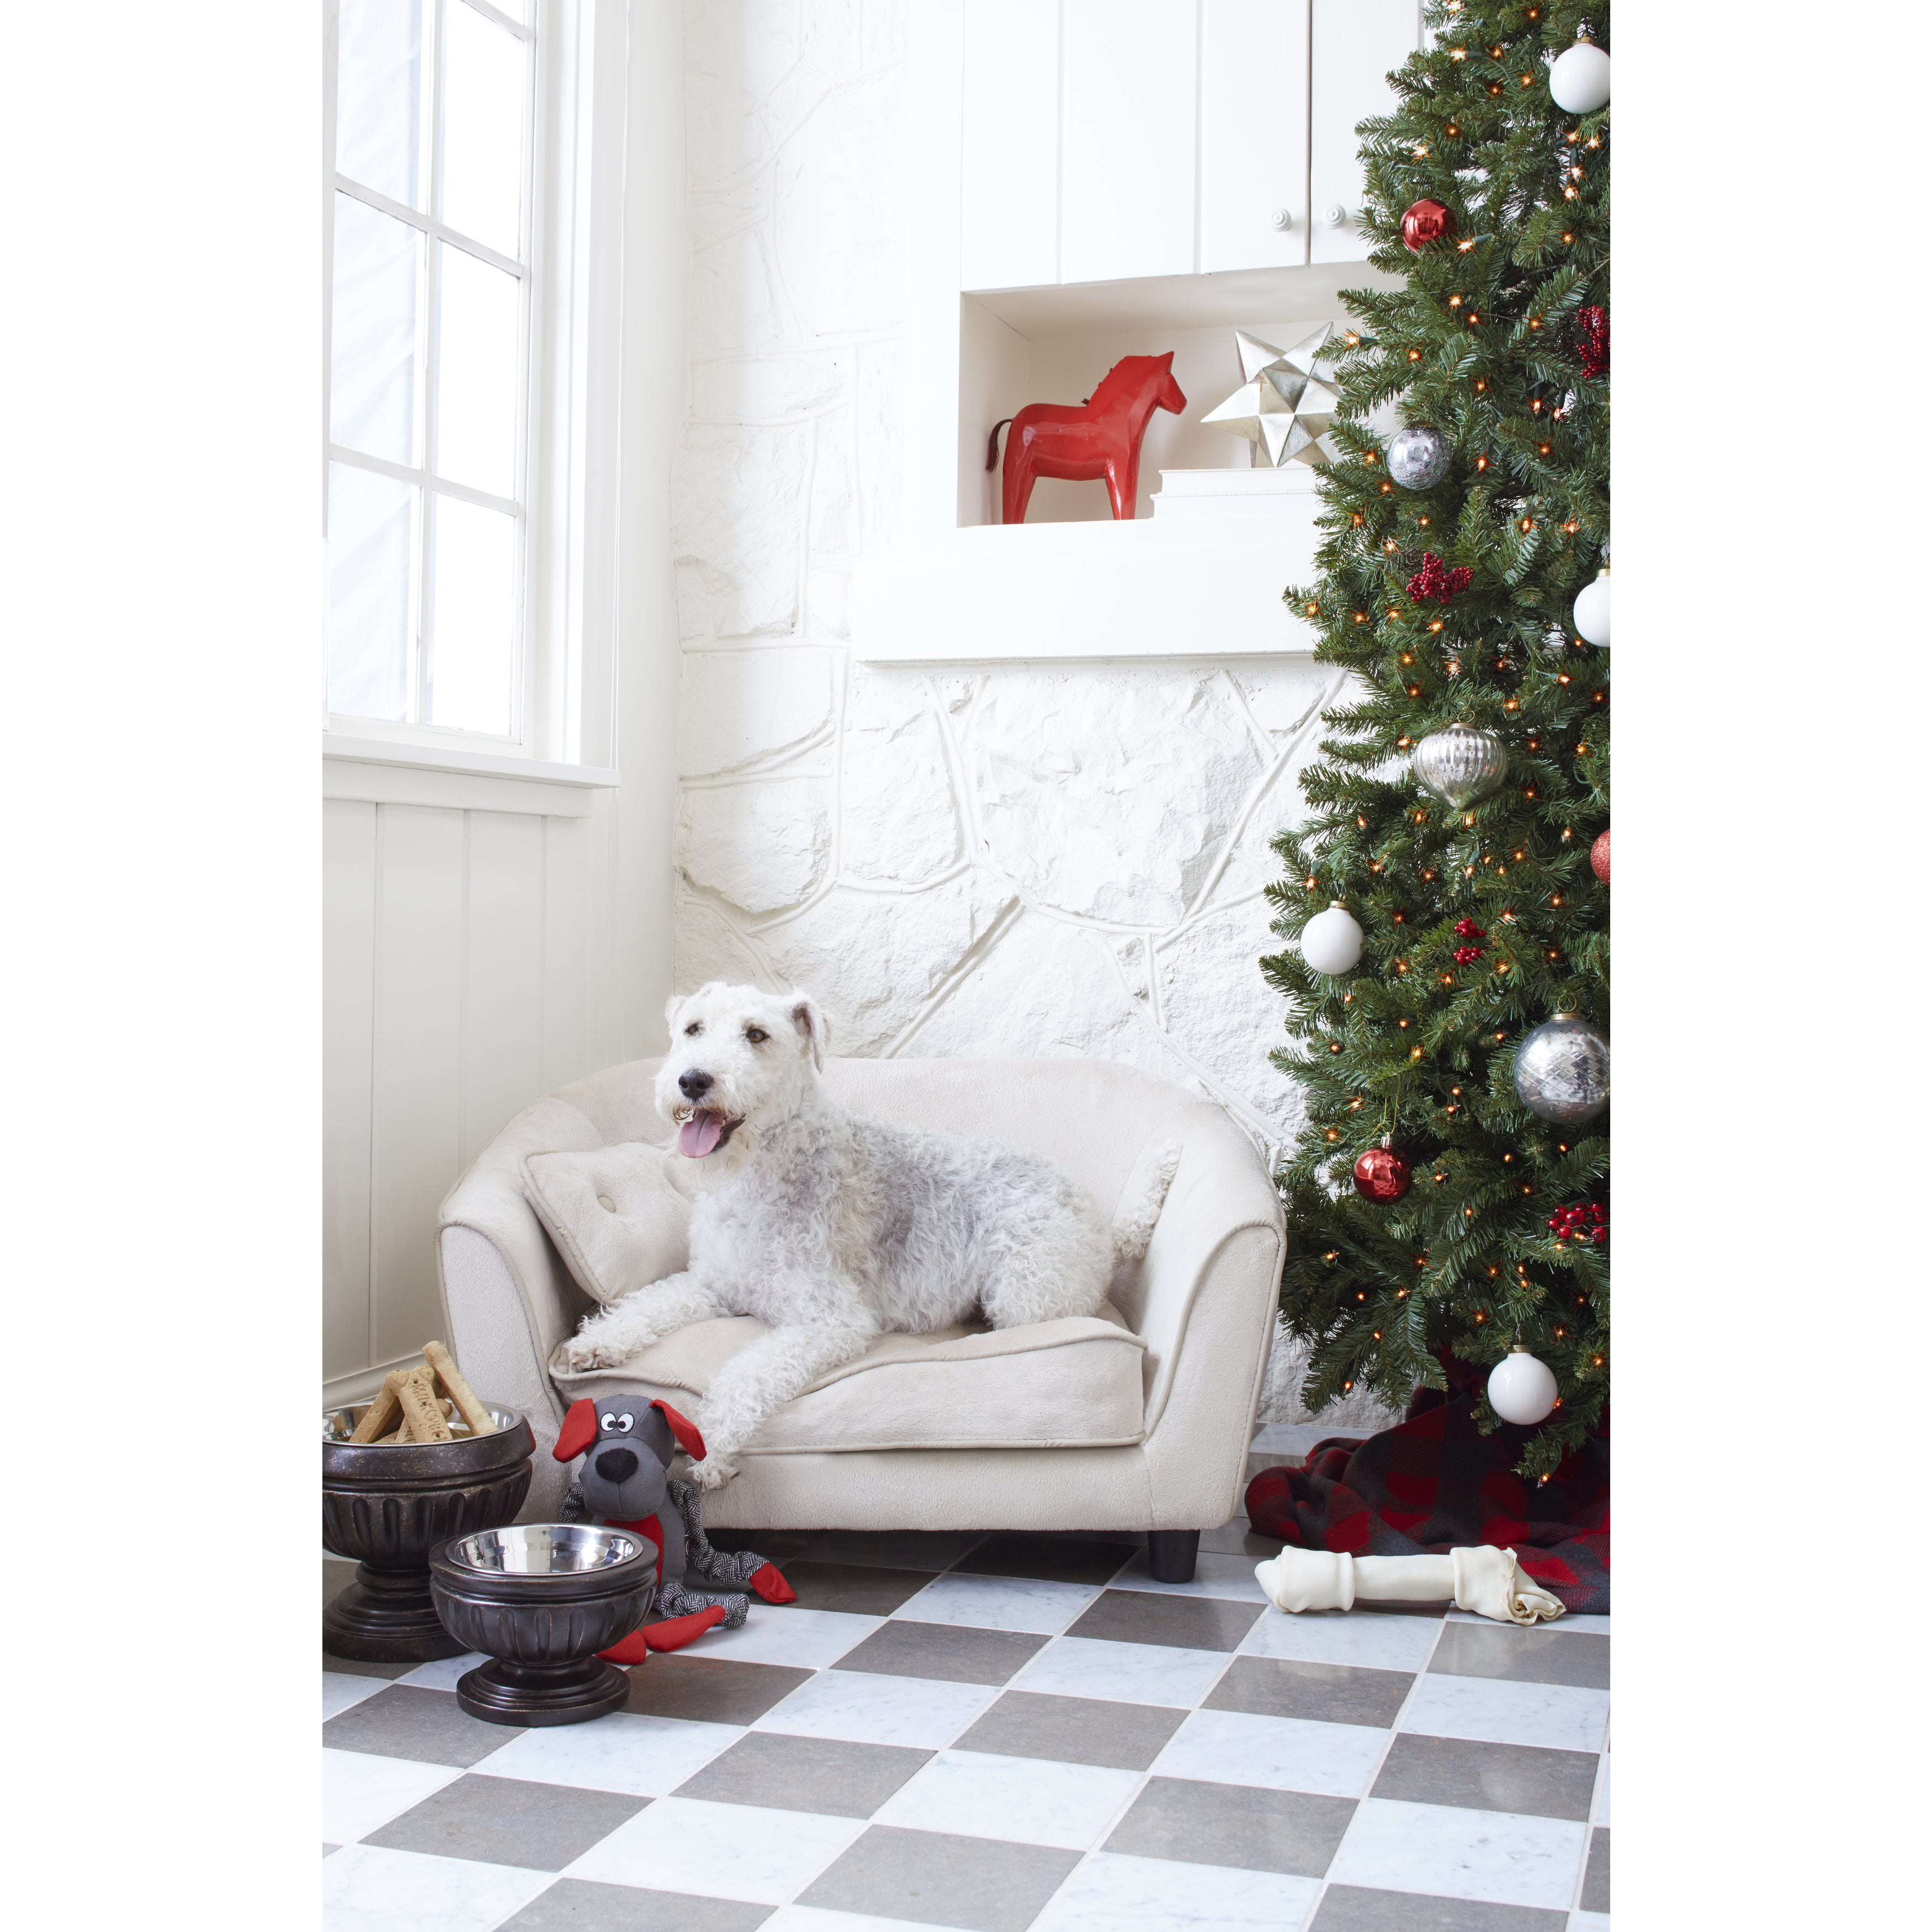 Enchanted Home Pet Astro Furniture Pet Sofa (Oyster), Bei...